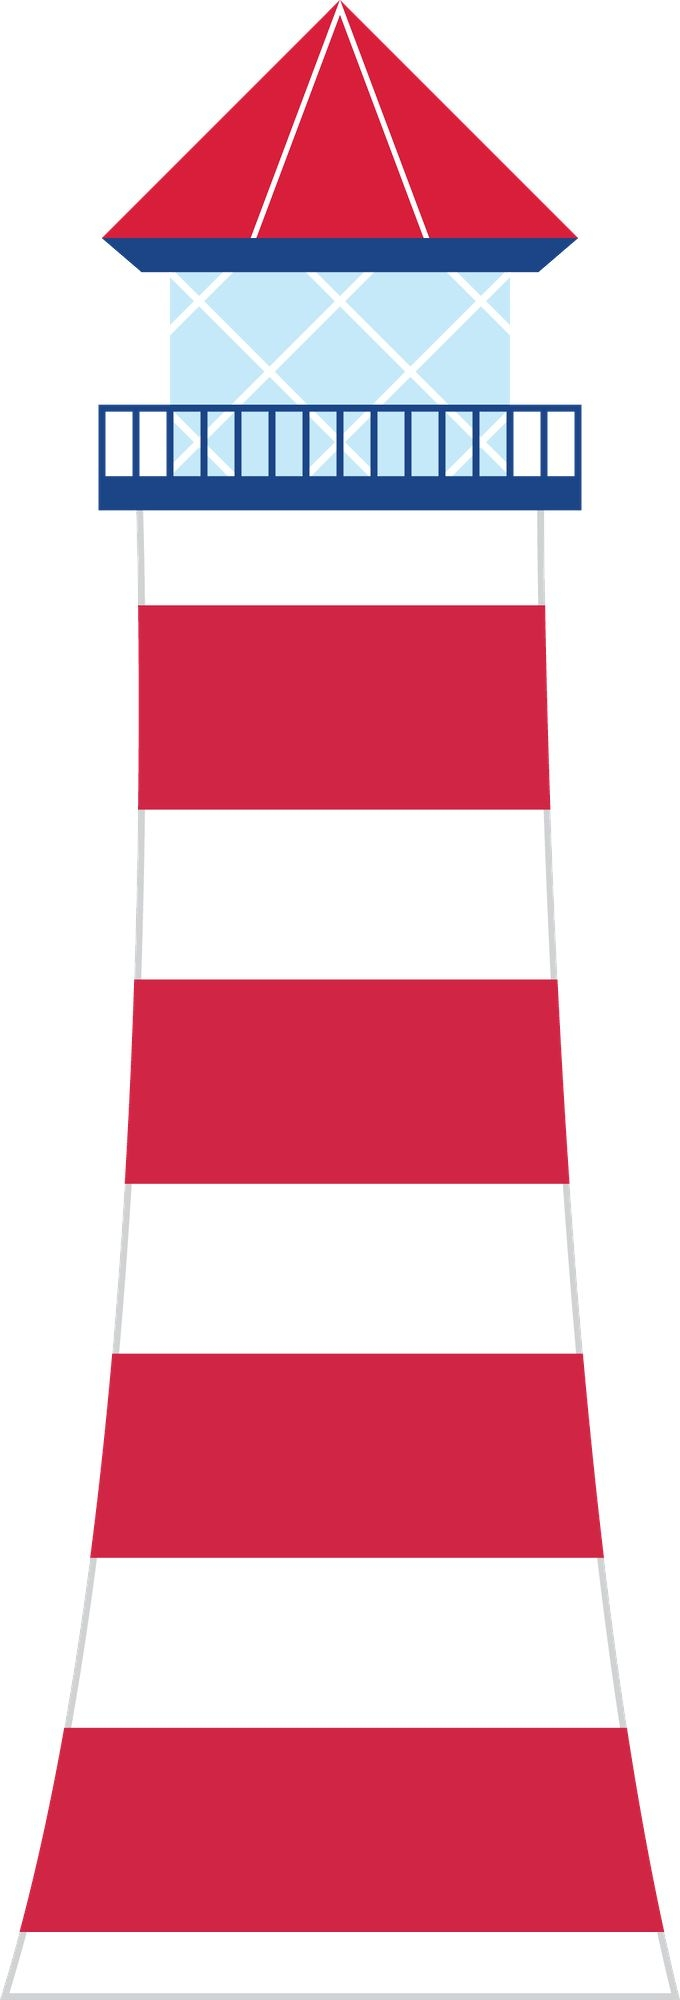 Lighthouse Clip Art Websites for Free.